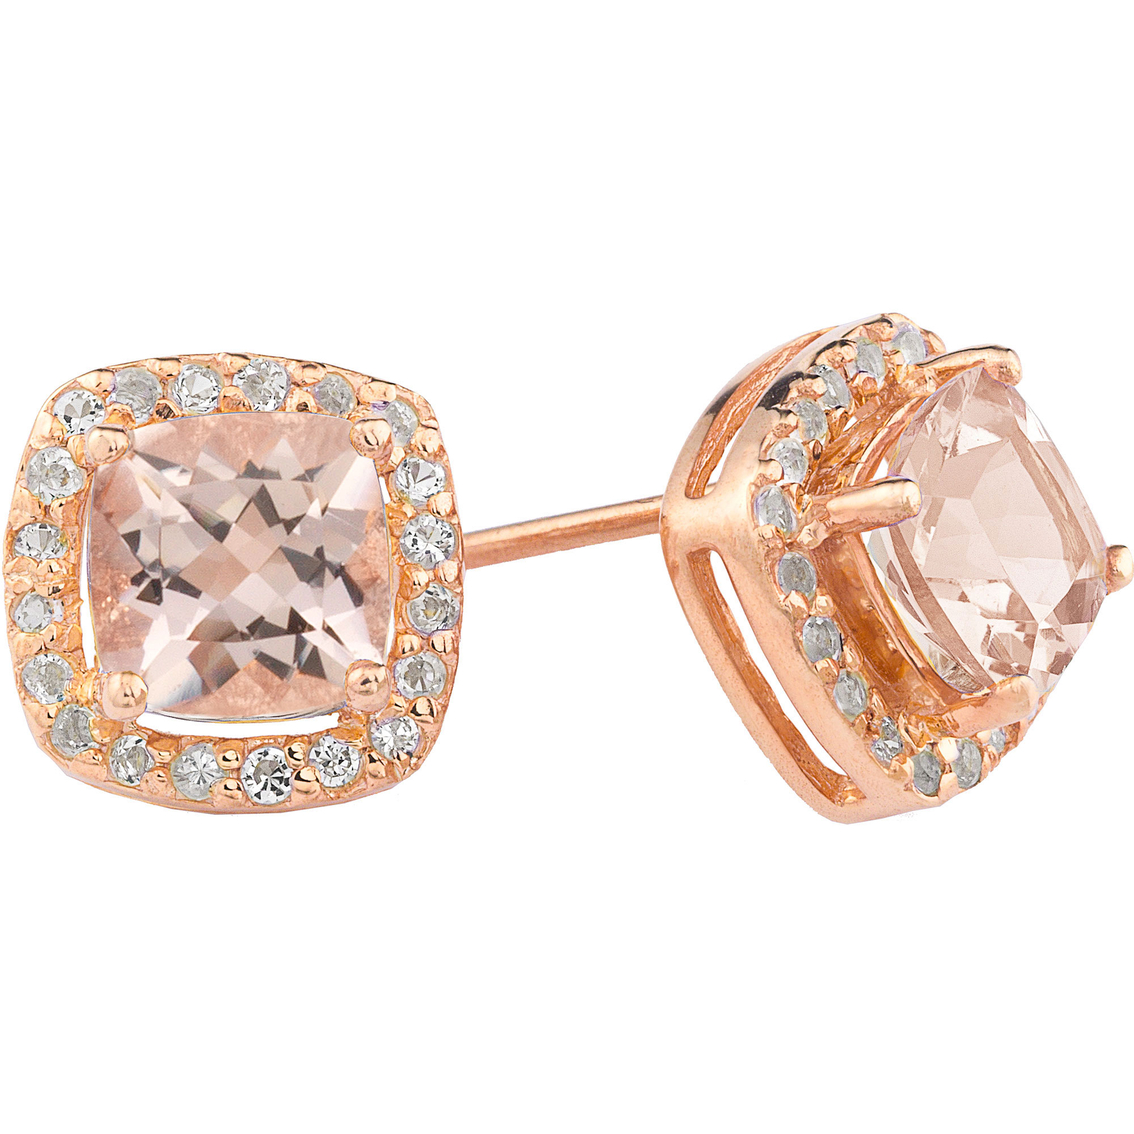 14k Rose Gold Over Sterling Silver Morganite Cushion Earrings